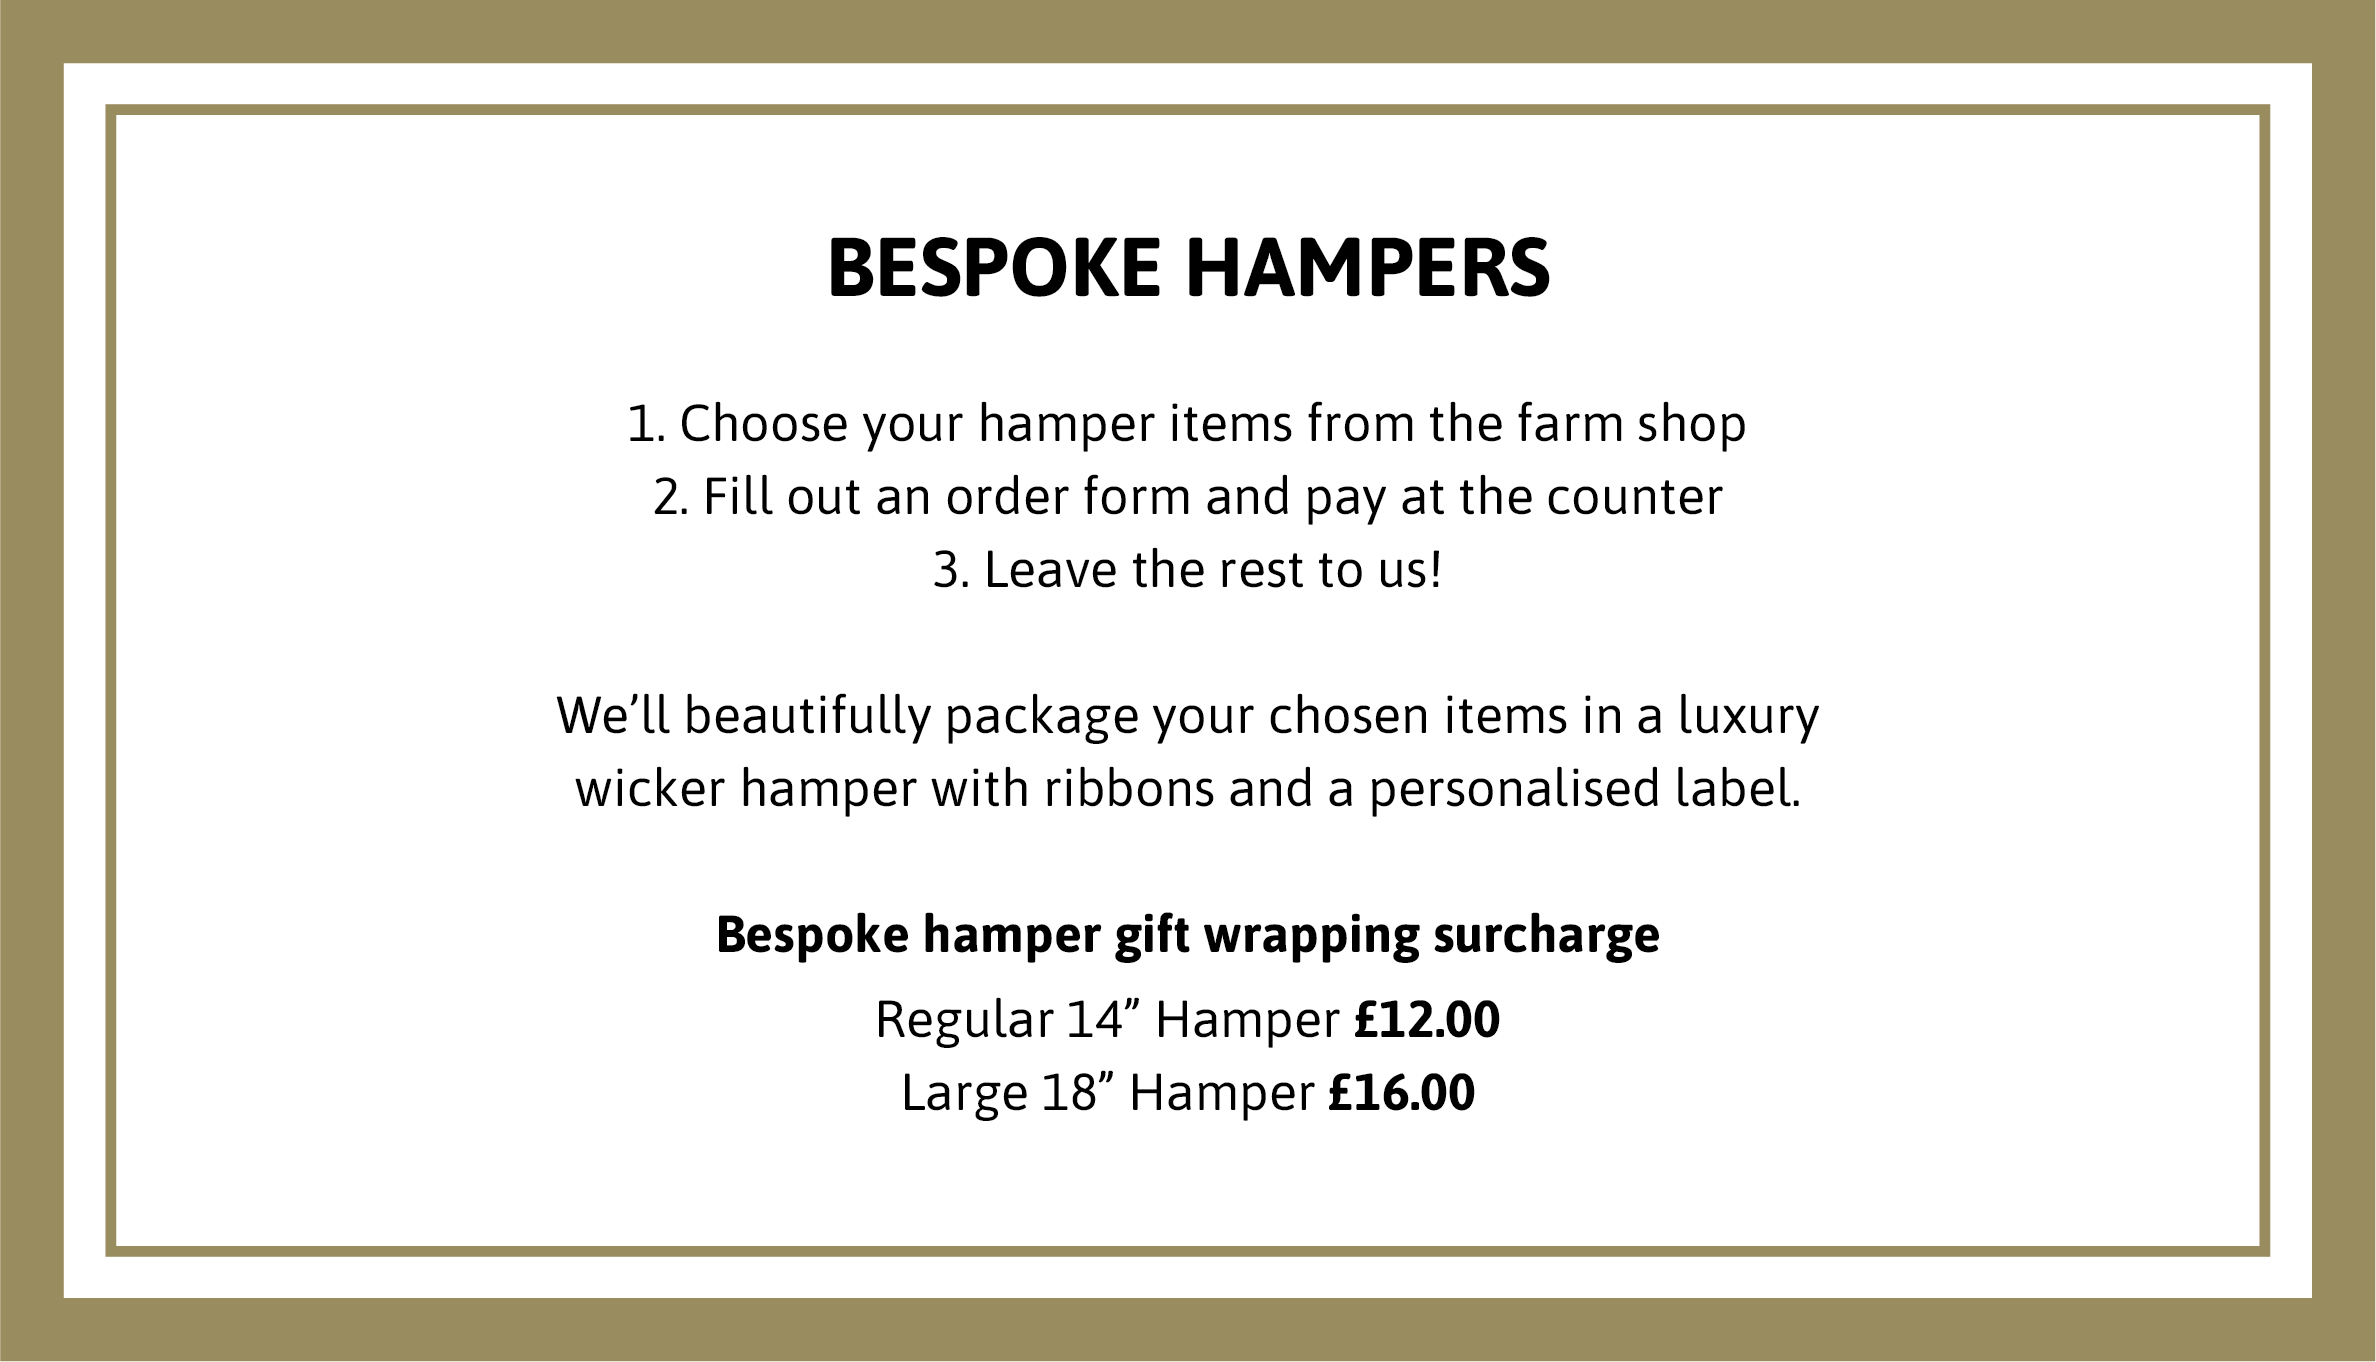 bespoke hampers-01.png